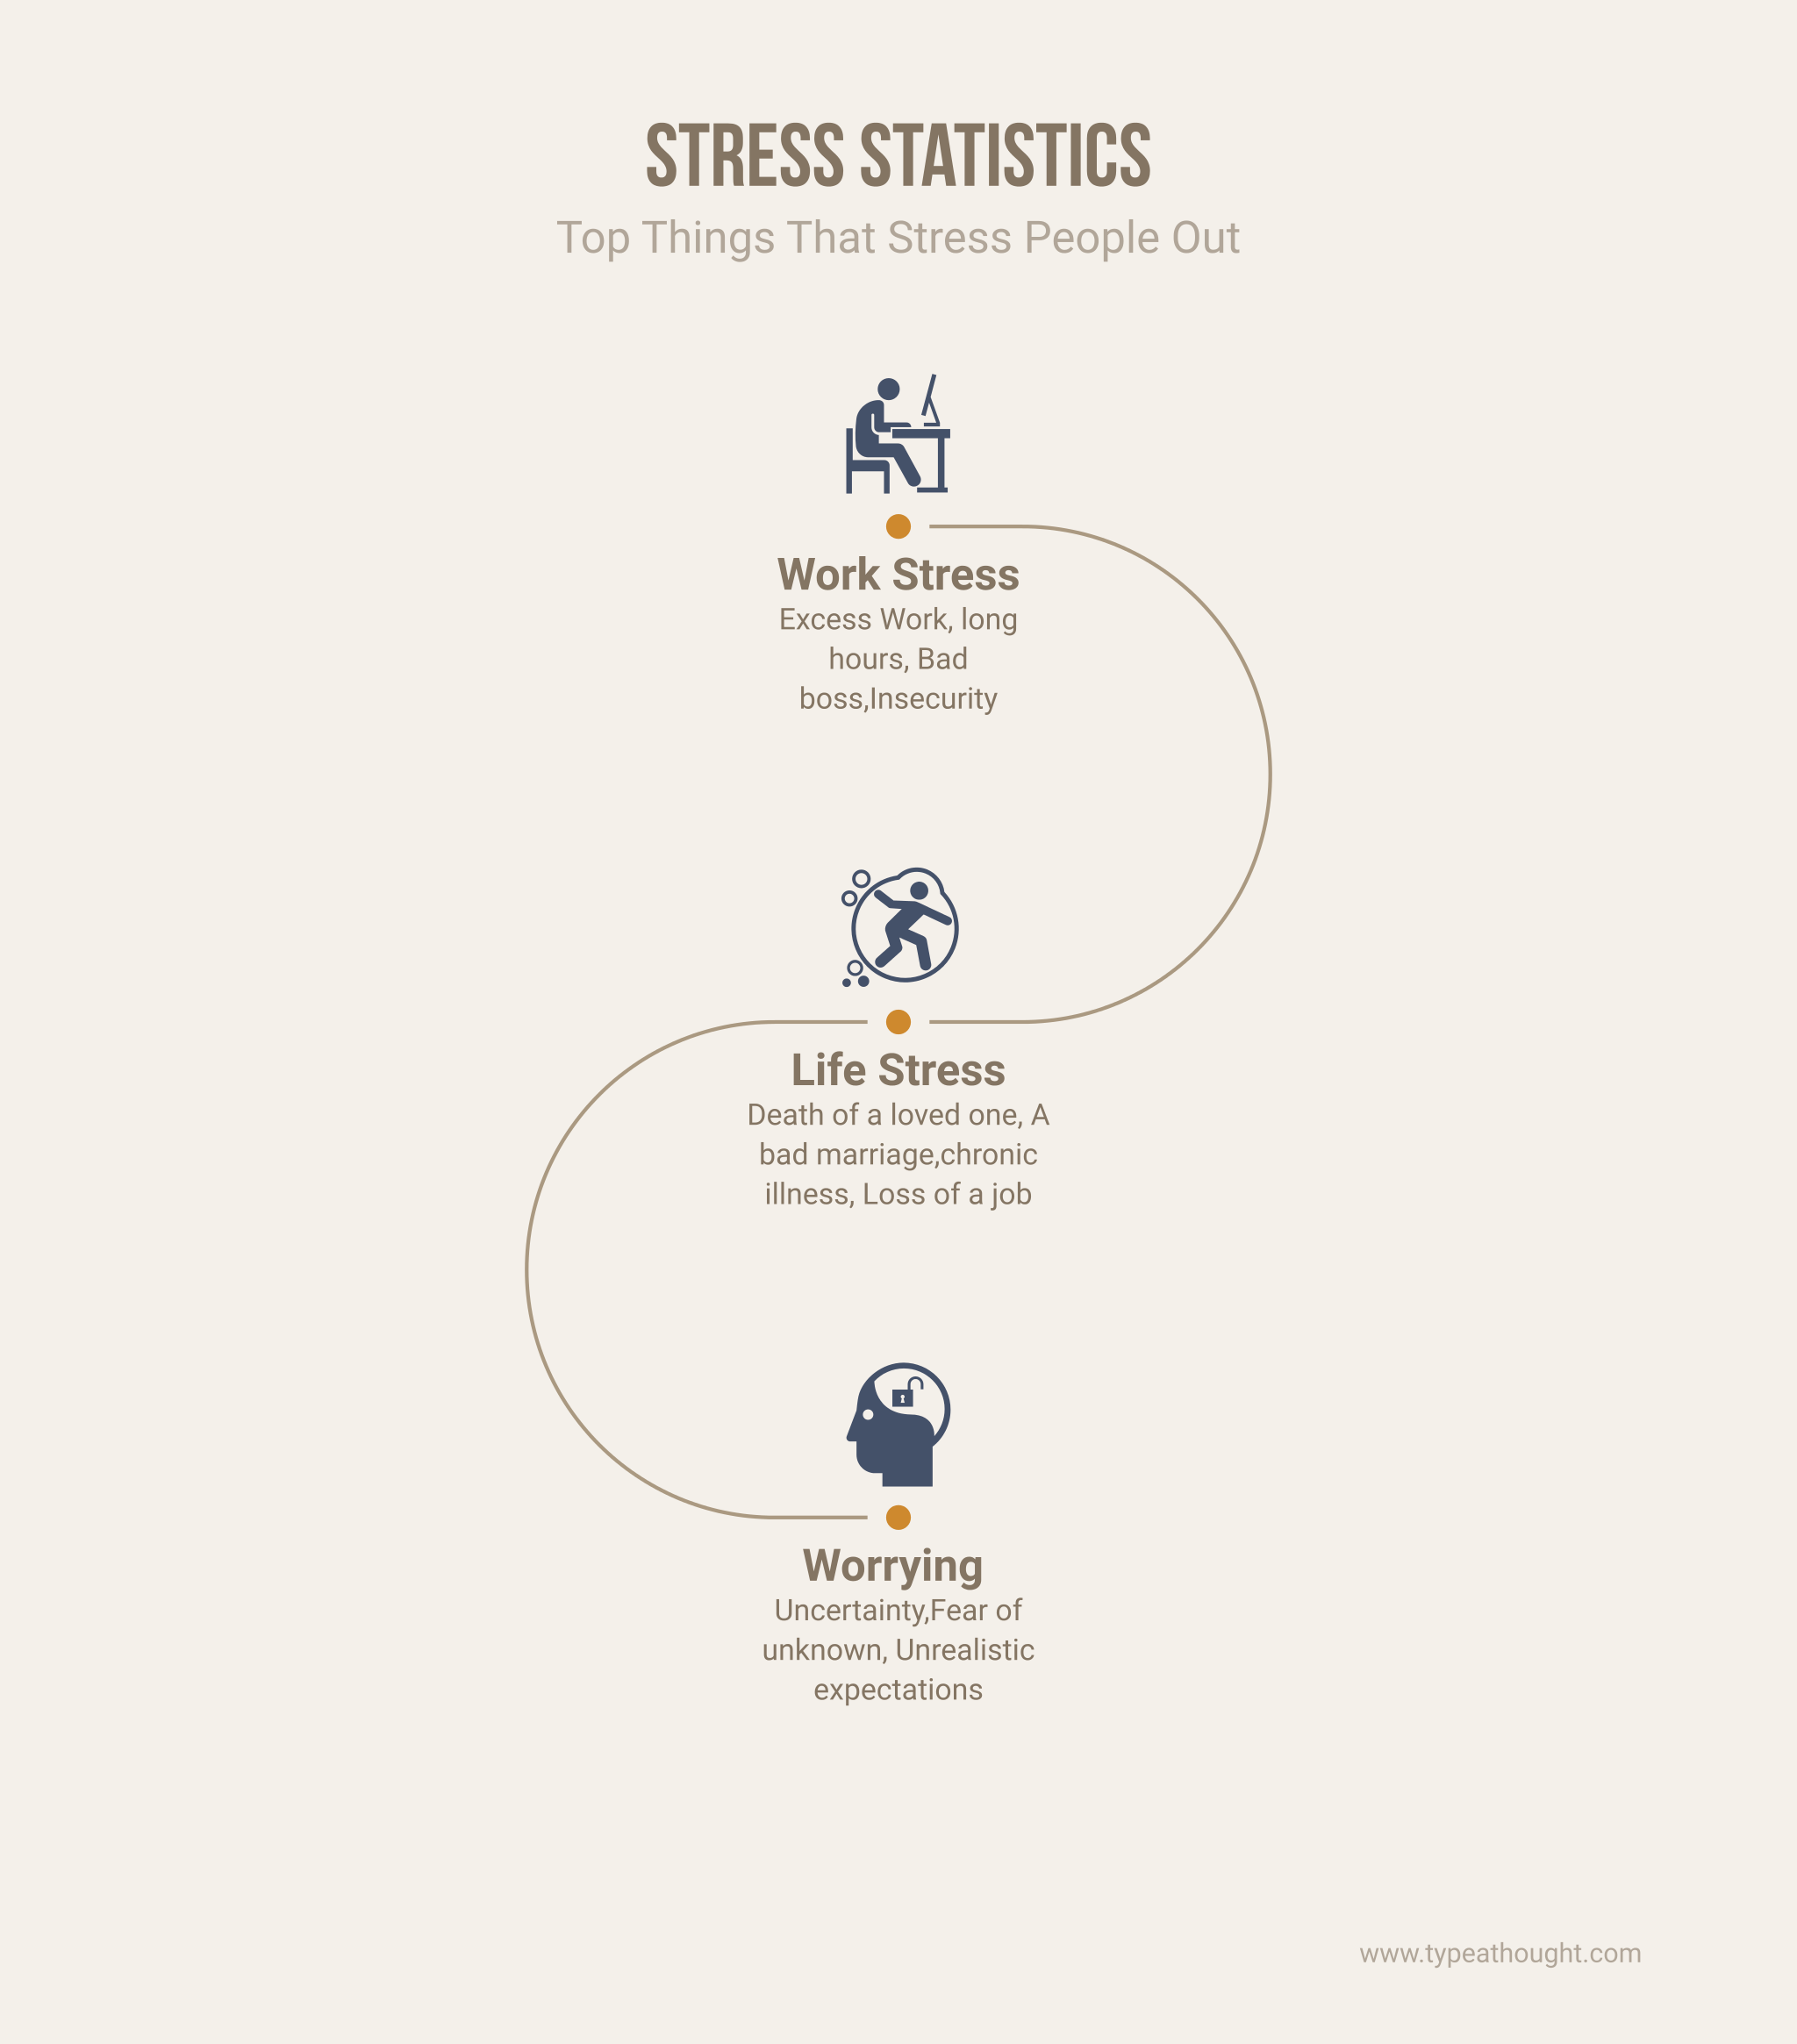 Causes of stress image